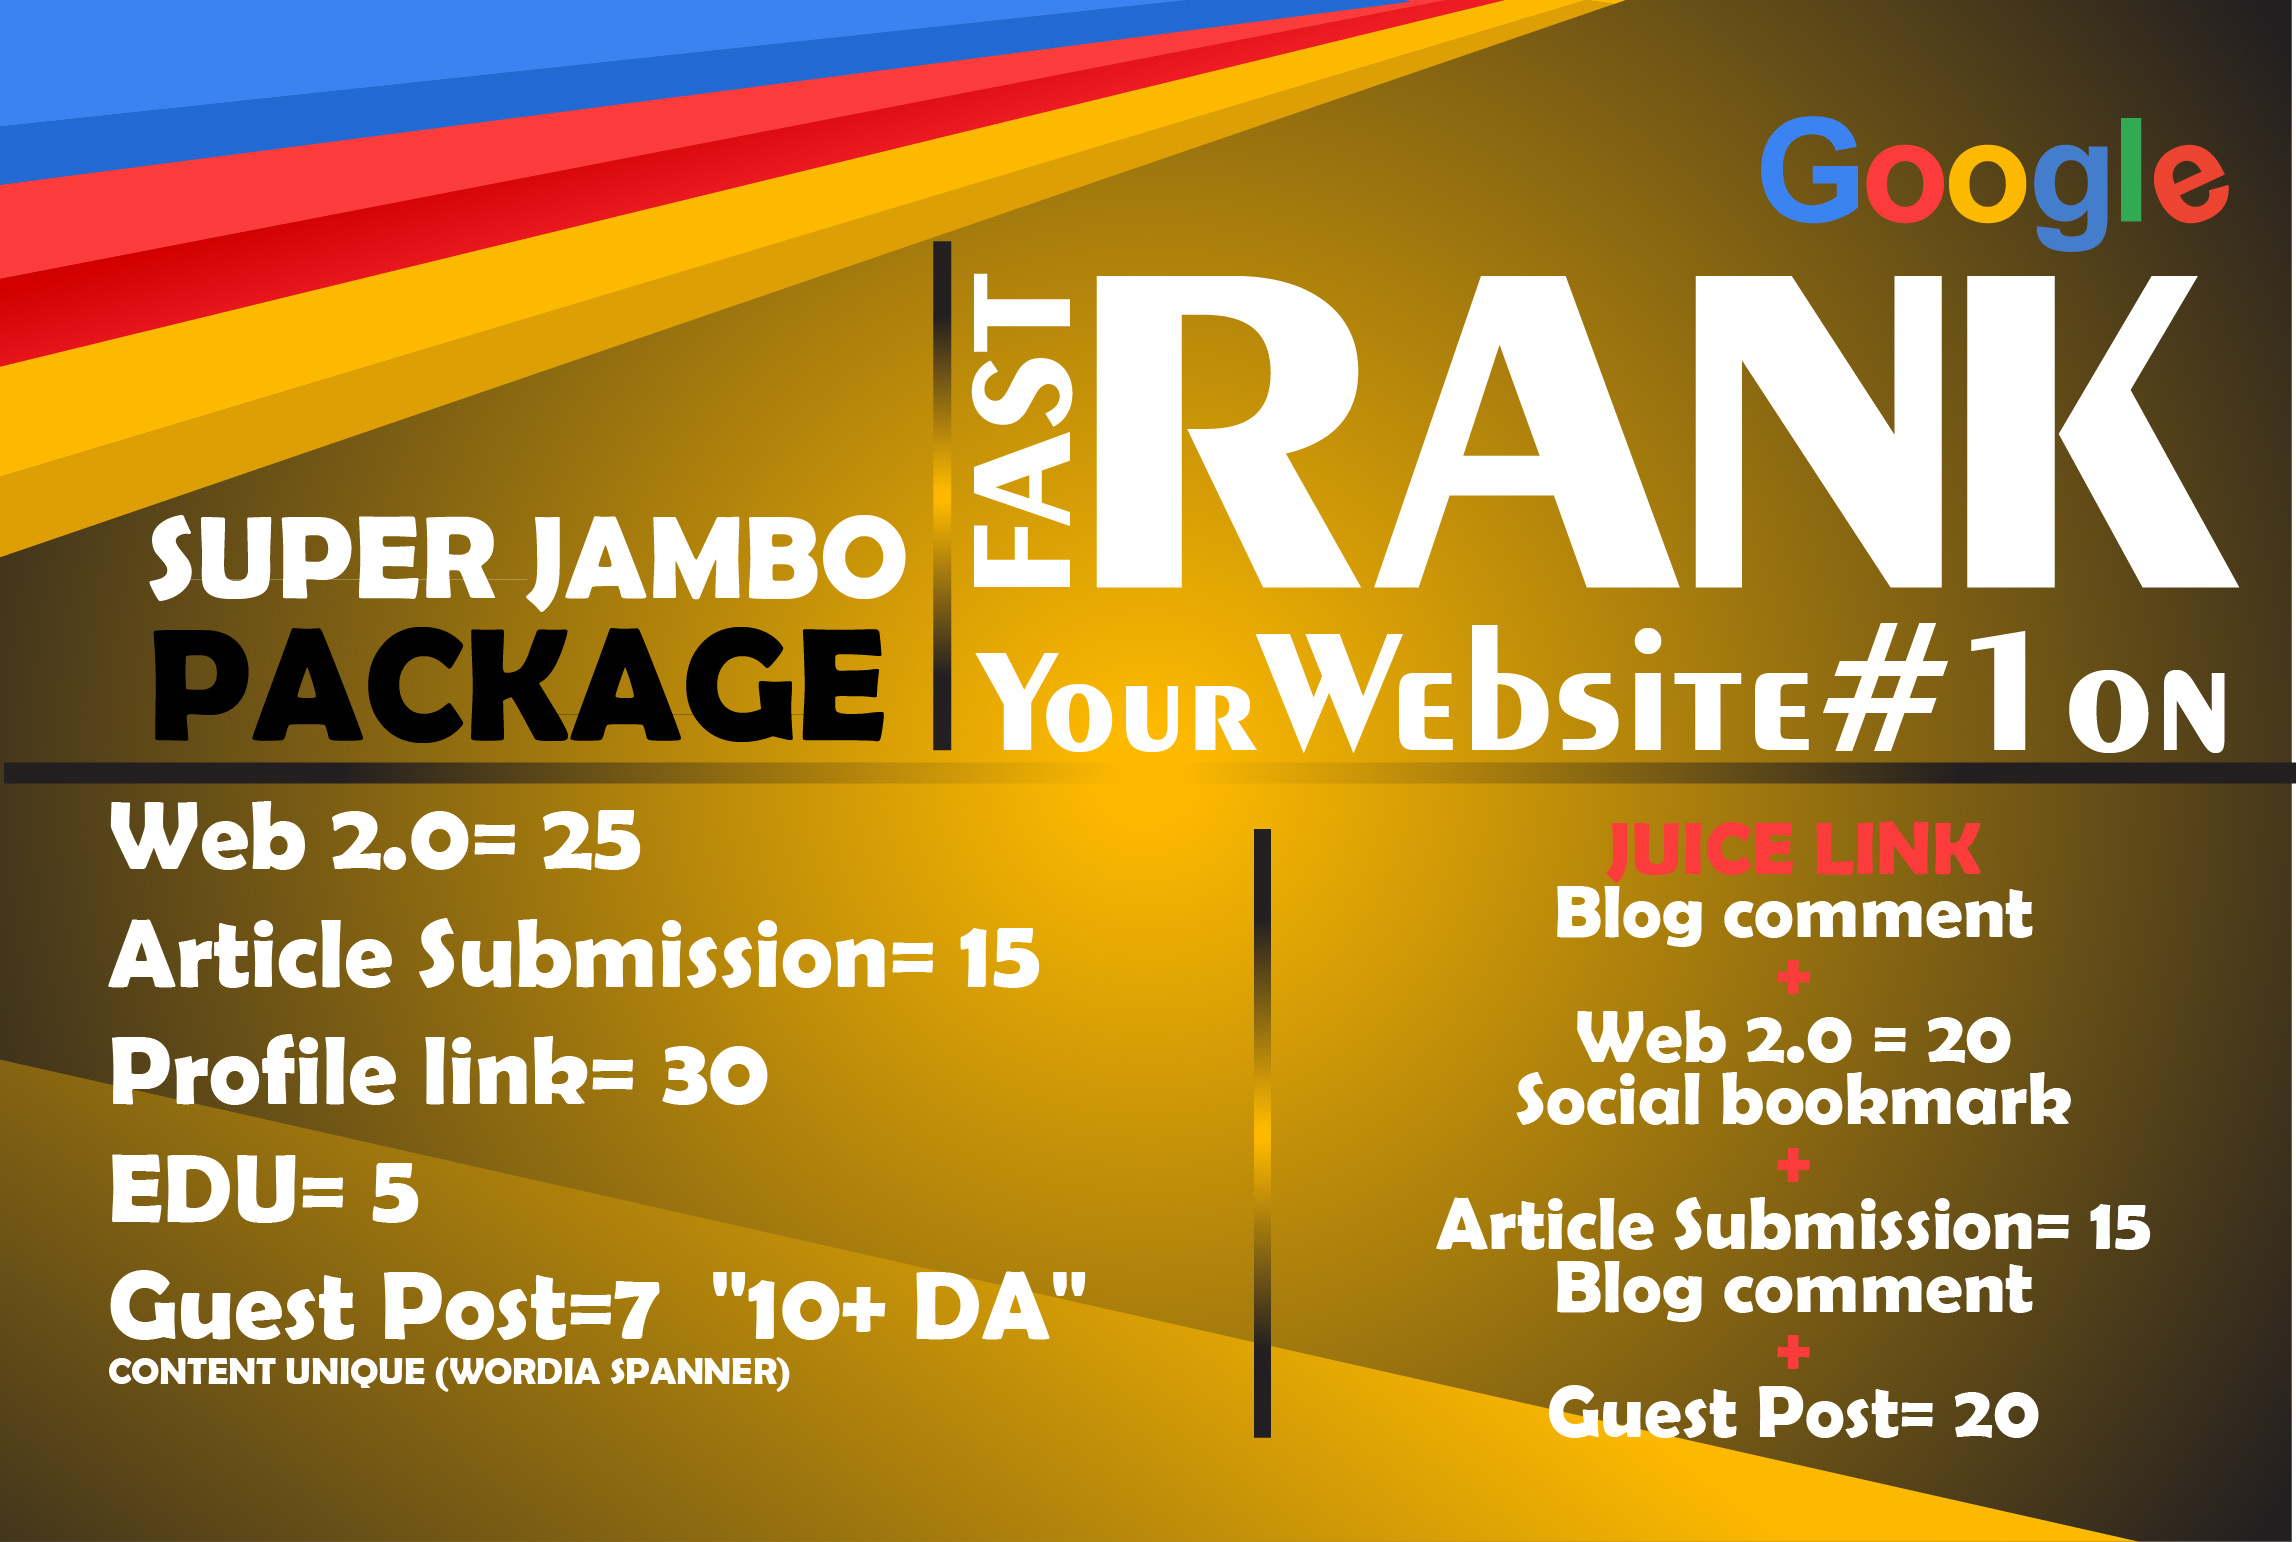 Jumbo PACKAGE - Manual Job - Latest Google Algorithm Breaker - Improve Your Ranking Towards Page 1